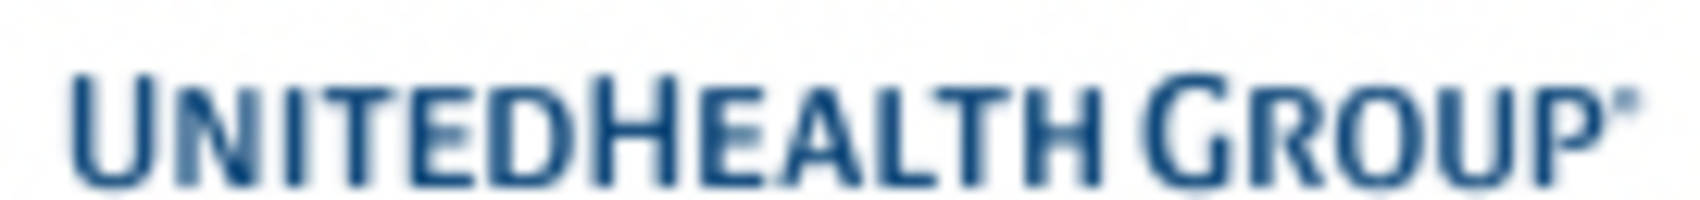 unitedhealth group announces extension of exchange offer to acquire surgical care affiliates, inc.